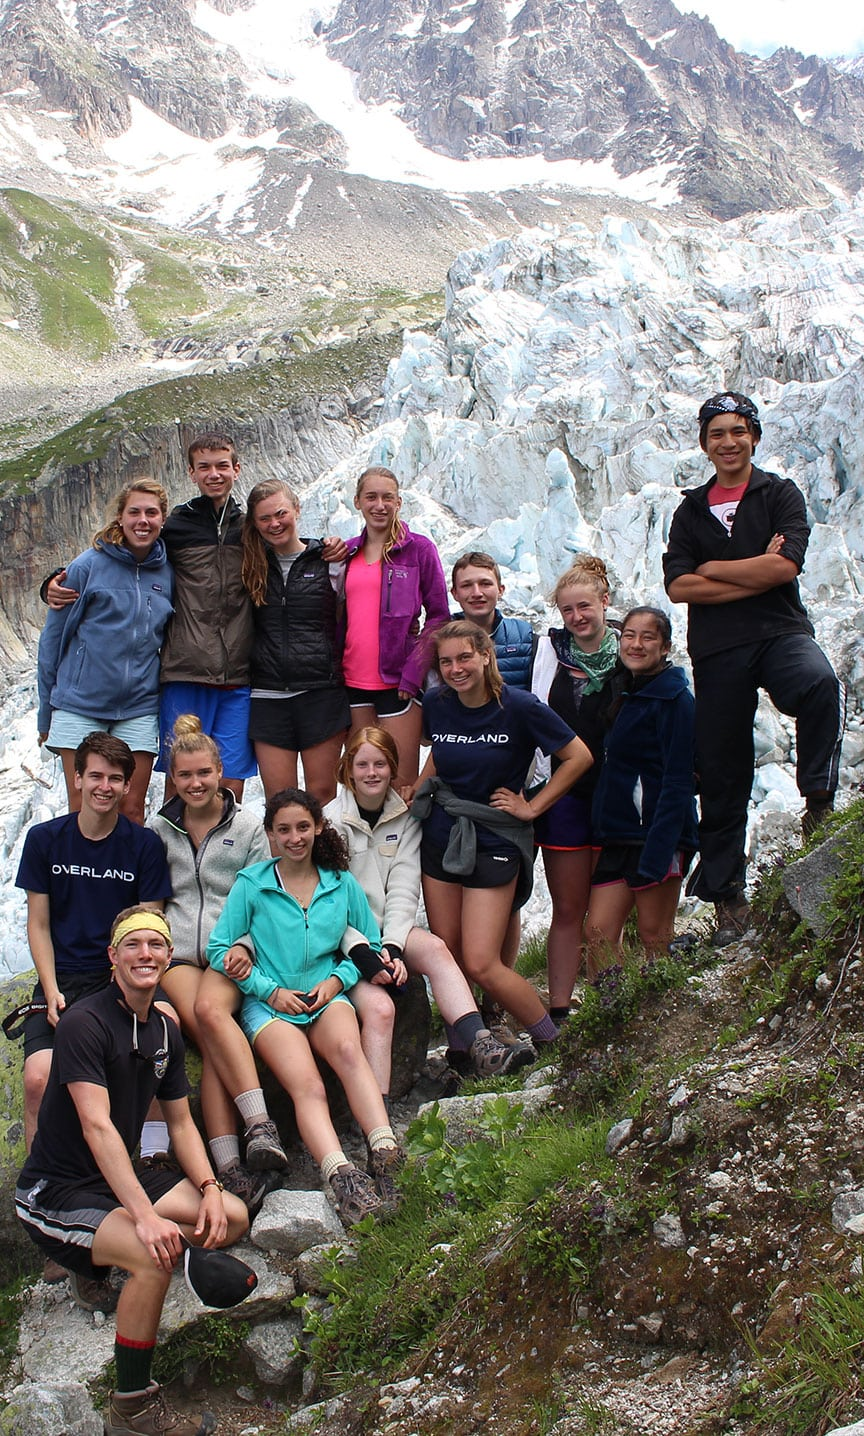 Group photo from this summer of campers take a quick respite from hiking